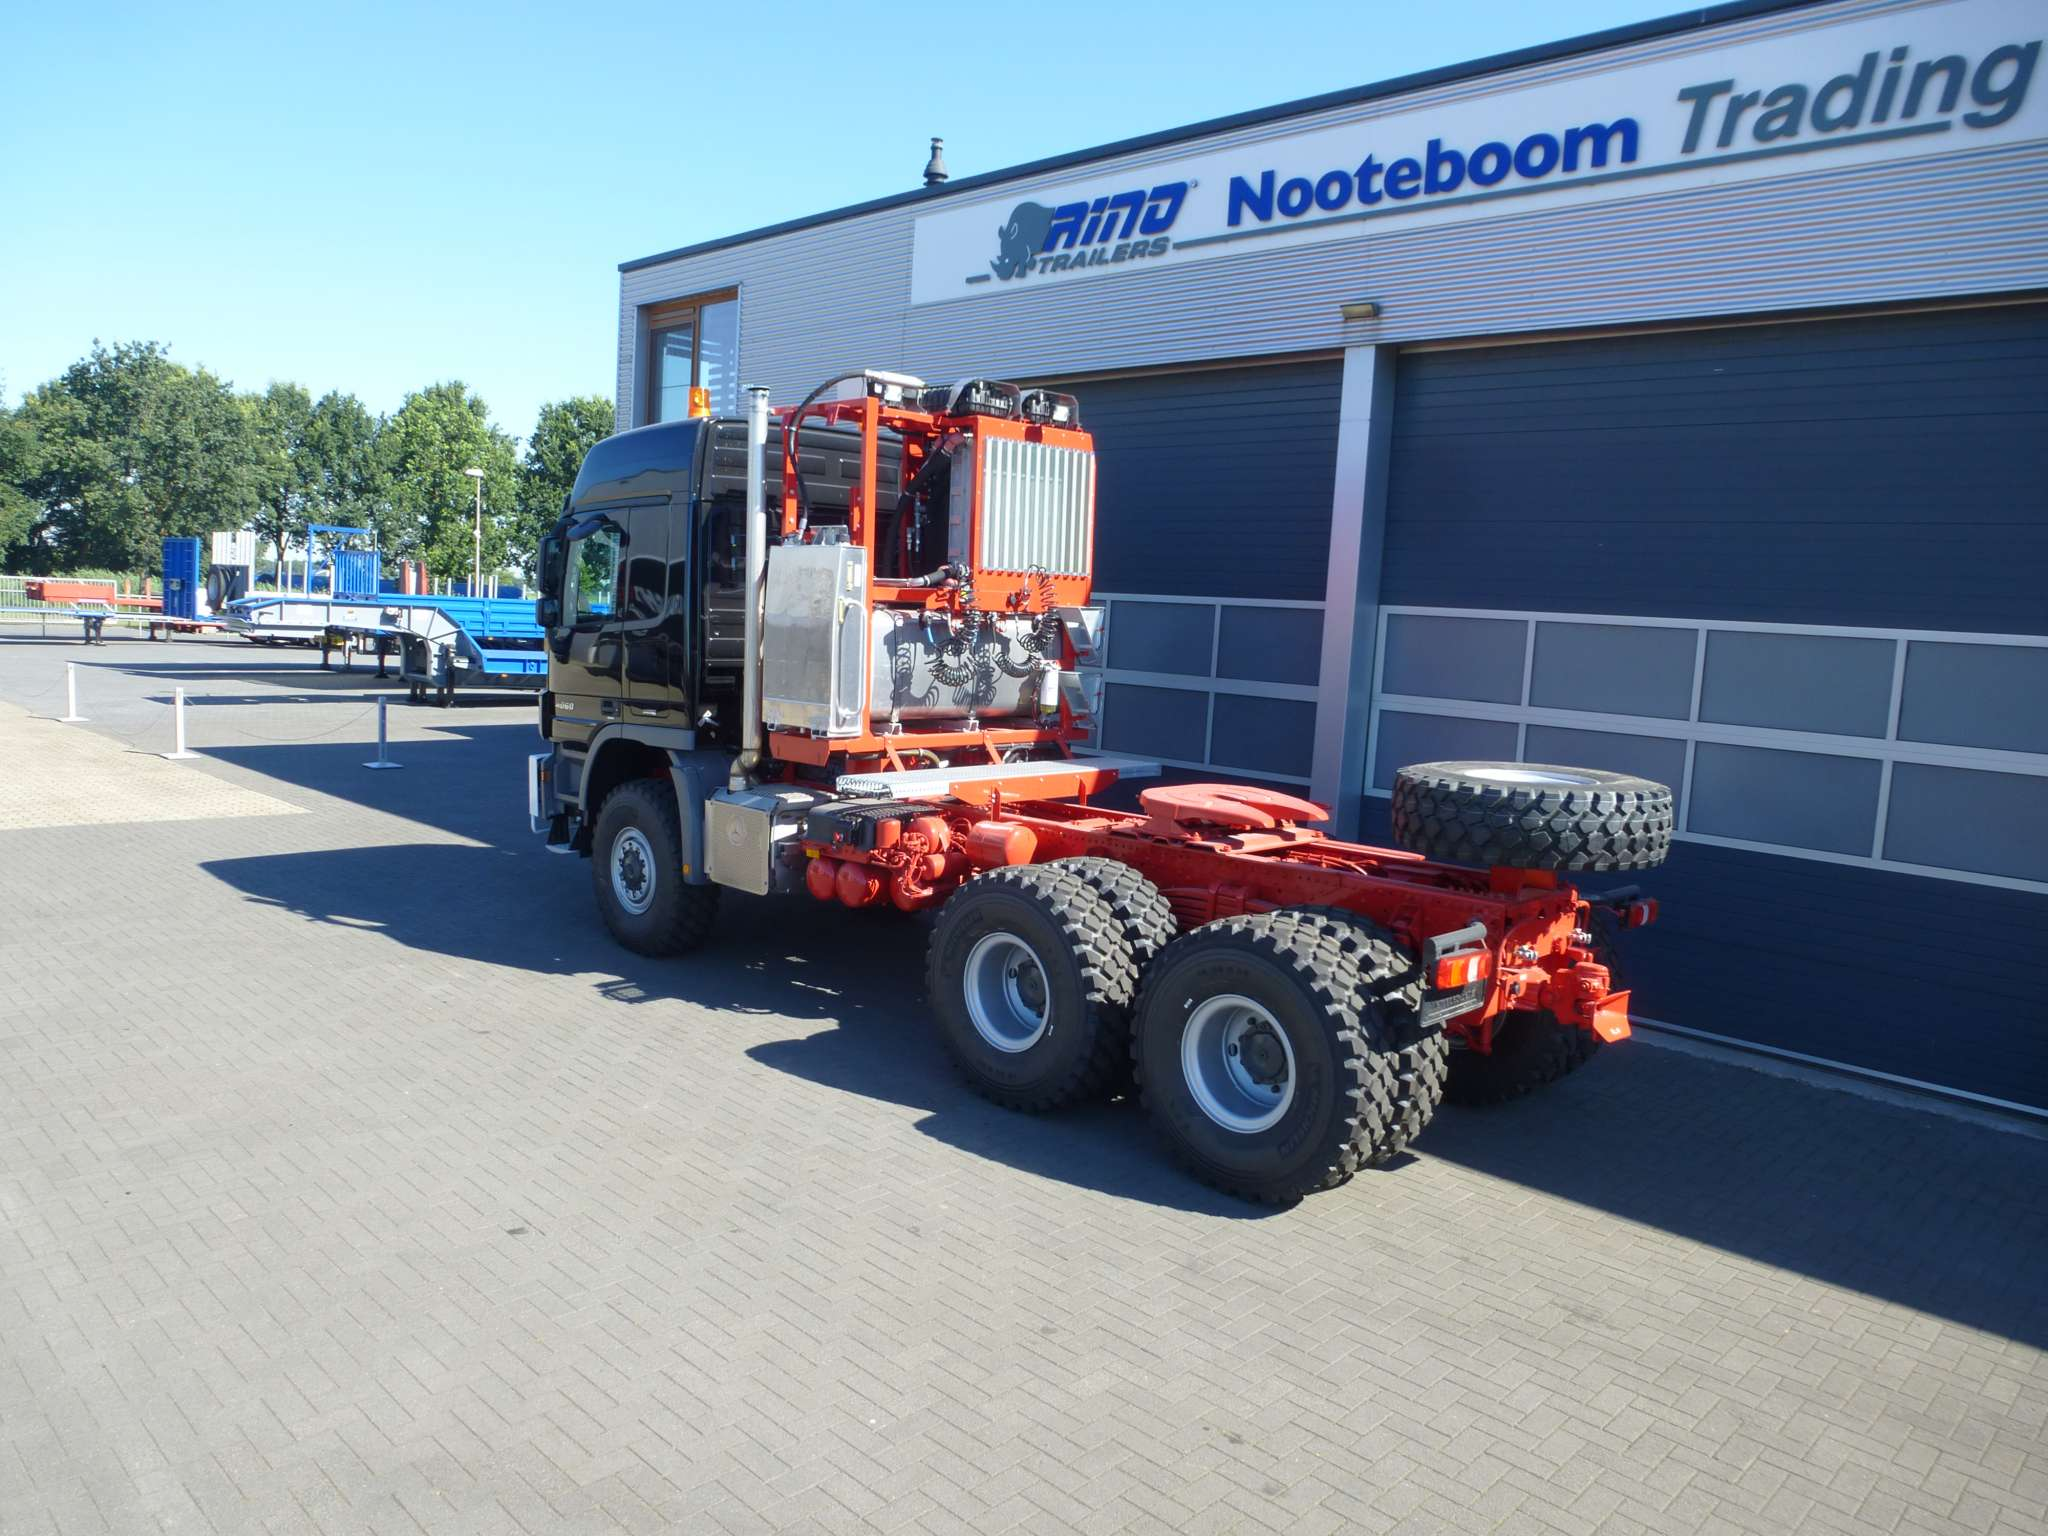 Mercedes Benz Titan heavy duty tractor head - 6x6 - 350 ton pulling capacity - RHD - from stock available